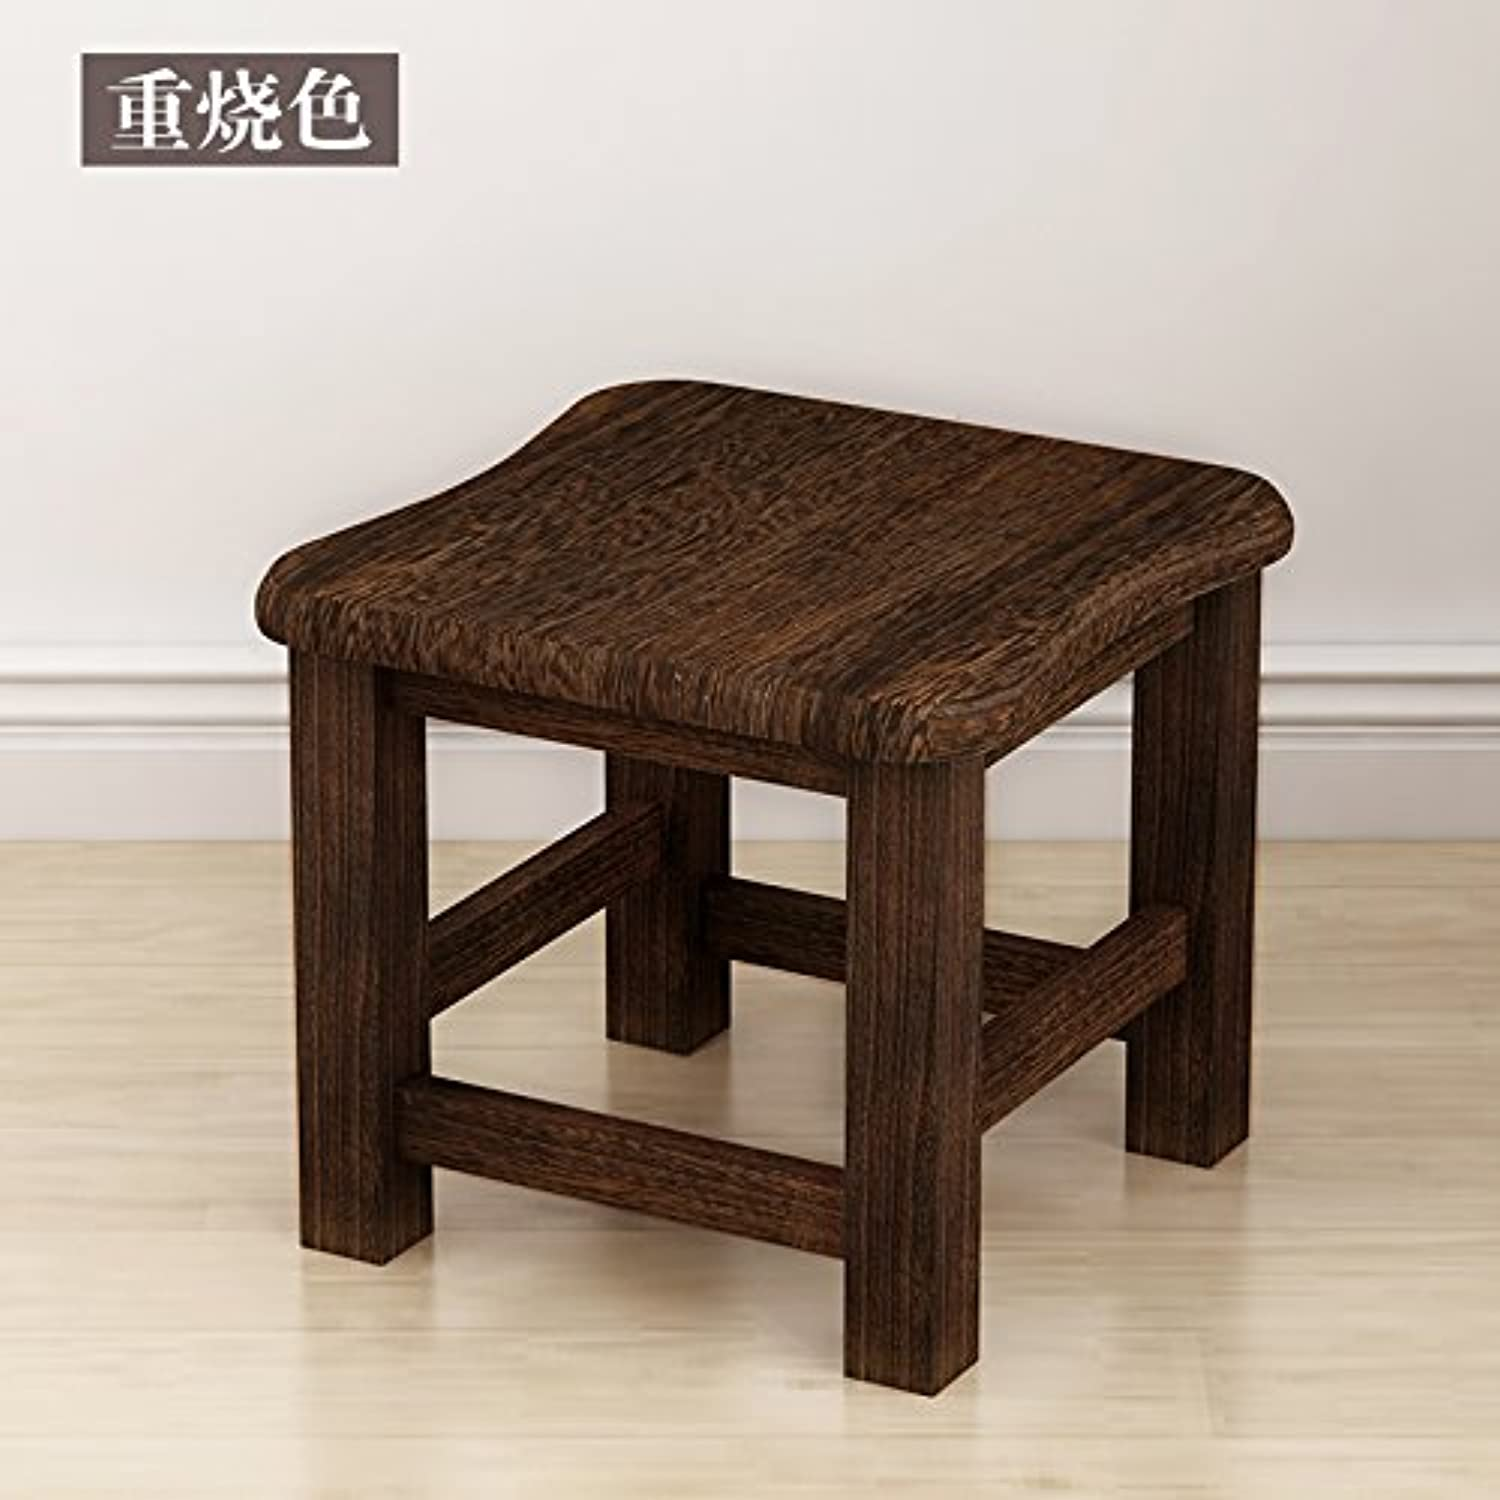 Dana Carrie Small Benches stools Home Modern Stylish Creative Benches on a Low stool Solid Wood Home Wood Bench, B